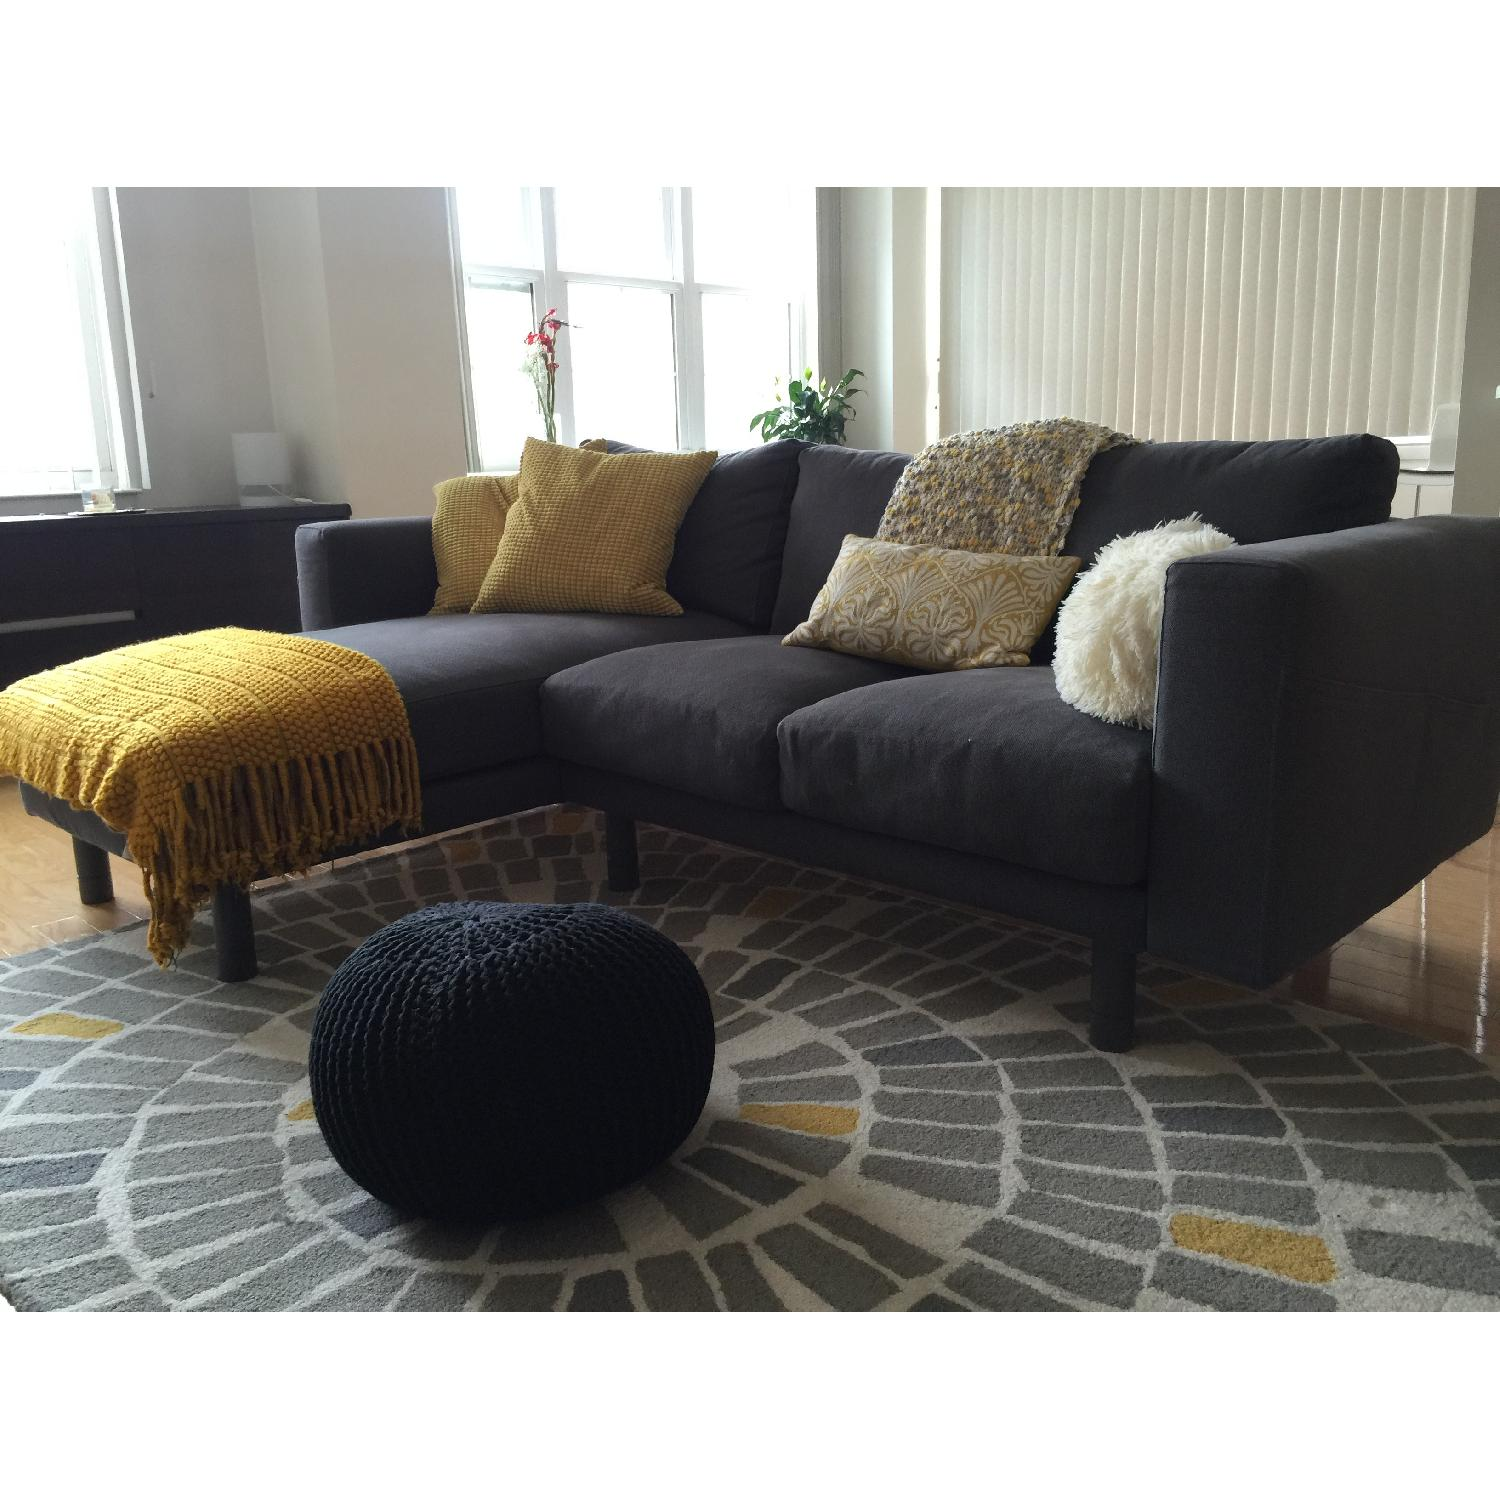 Ikea Sectional Couch - image-6